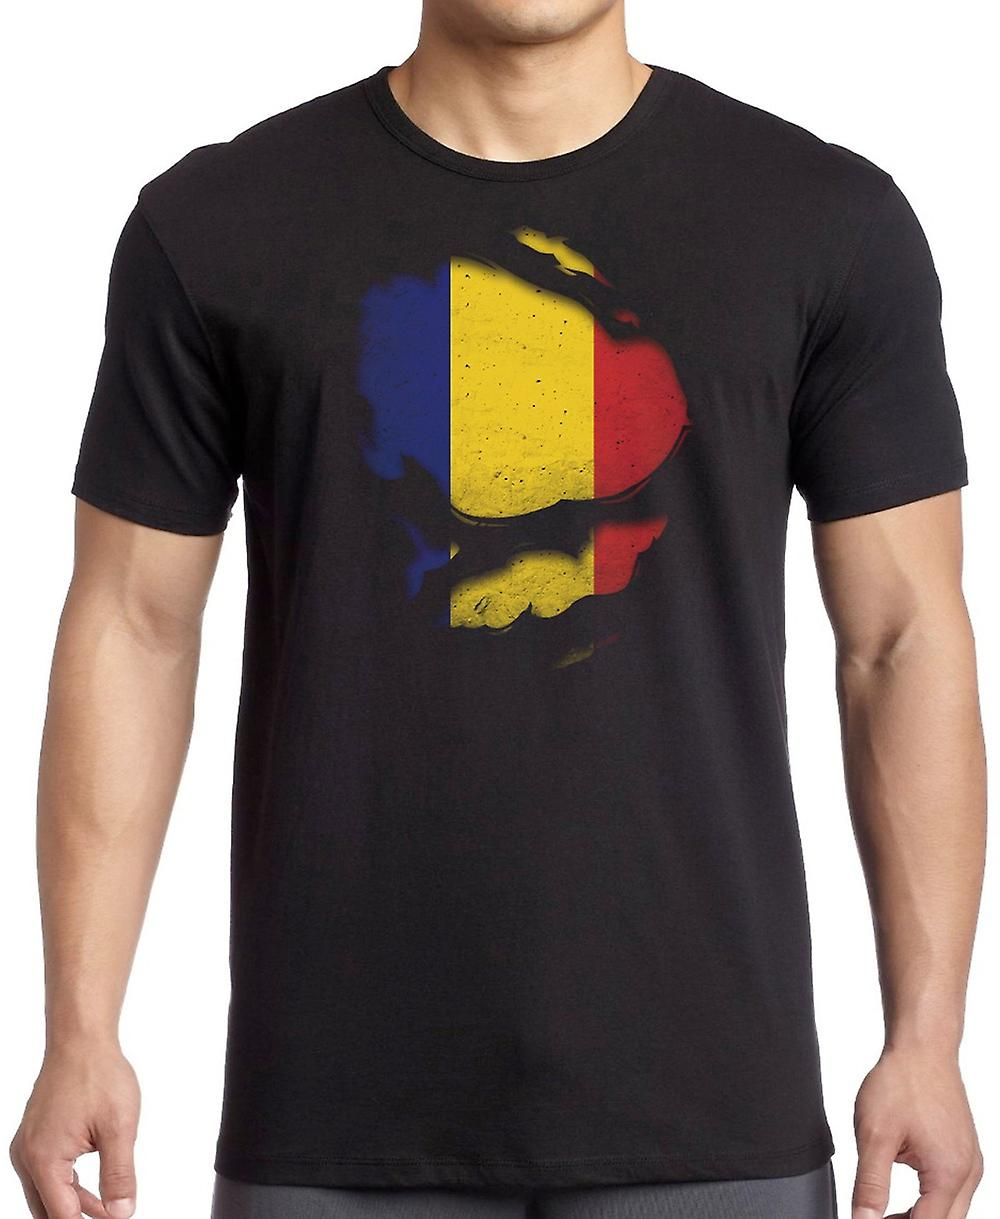 Romania Ripped Effect Under Shirt T Shirt